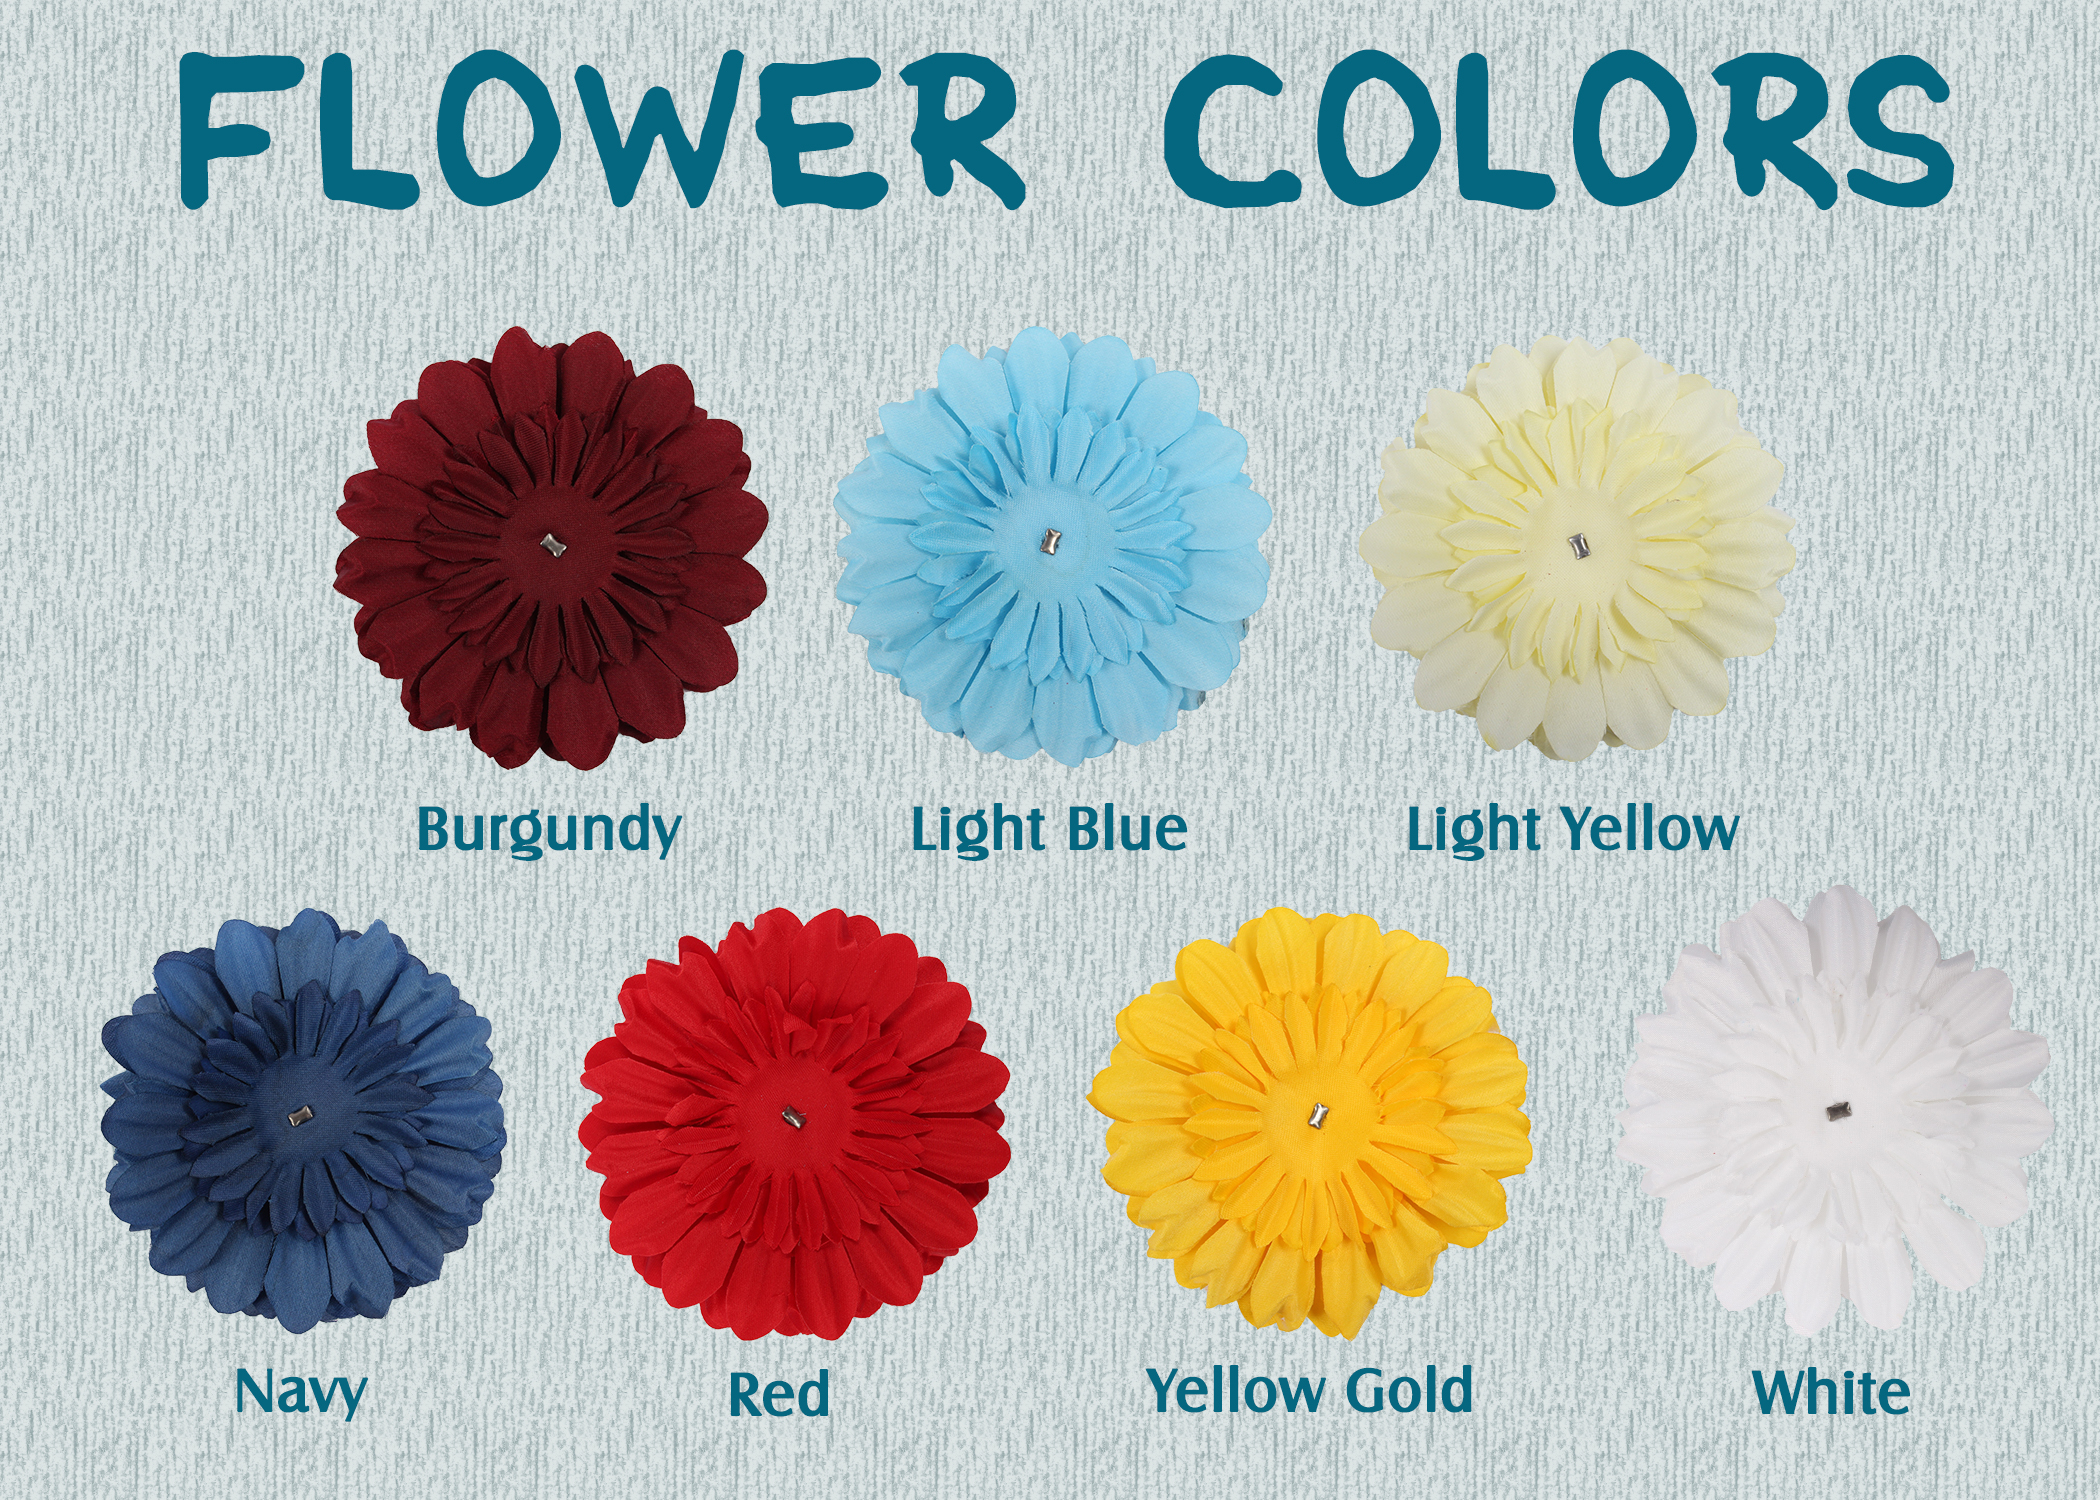 flower-colors.jpg